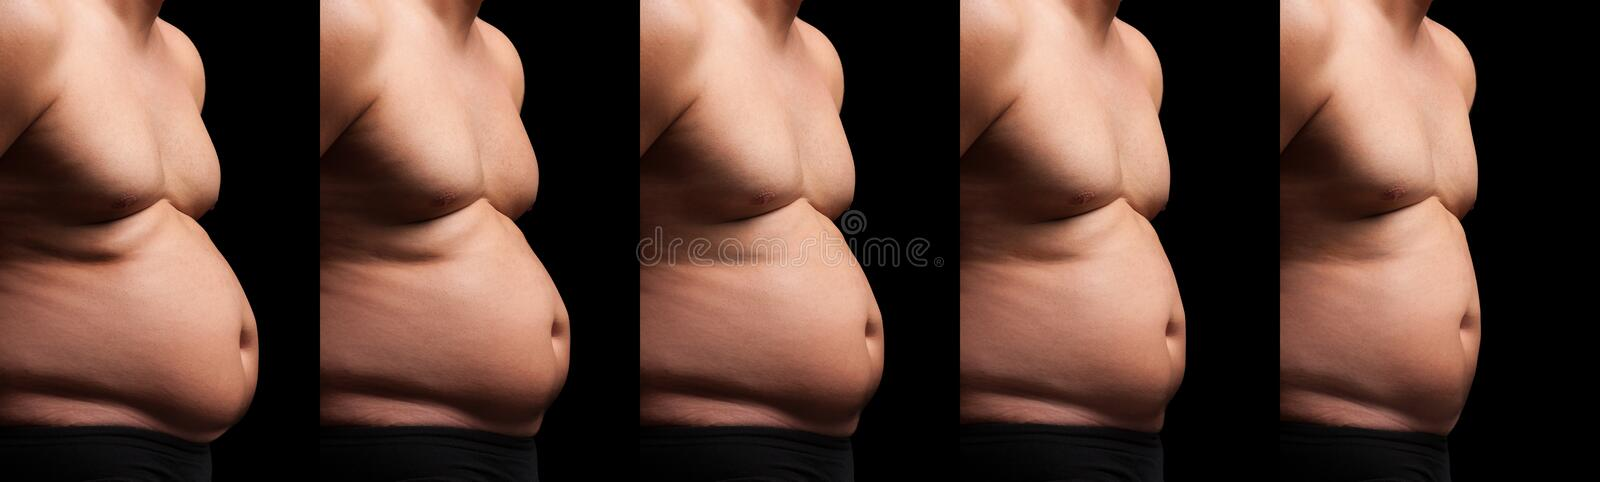 Fat Man Slimming royalty free stock photography